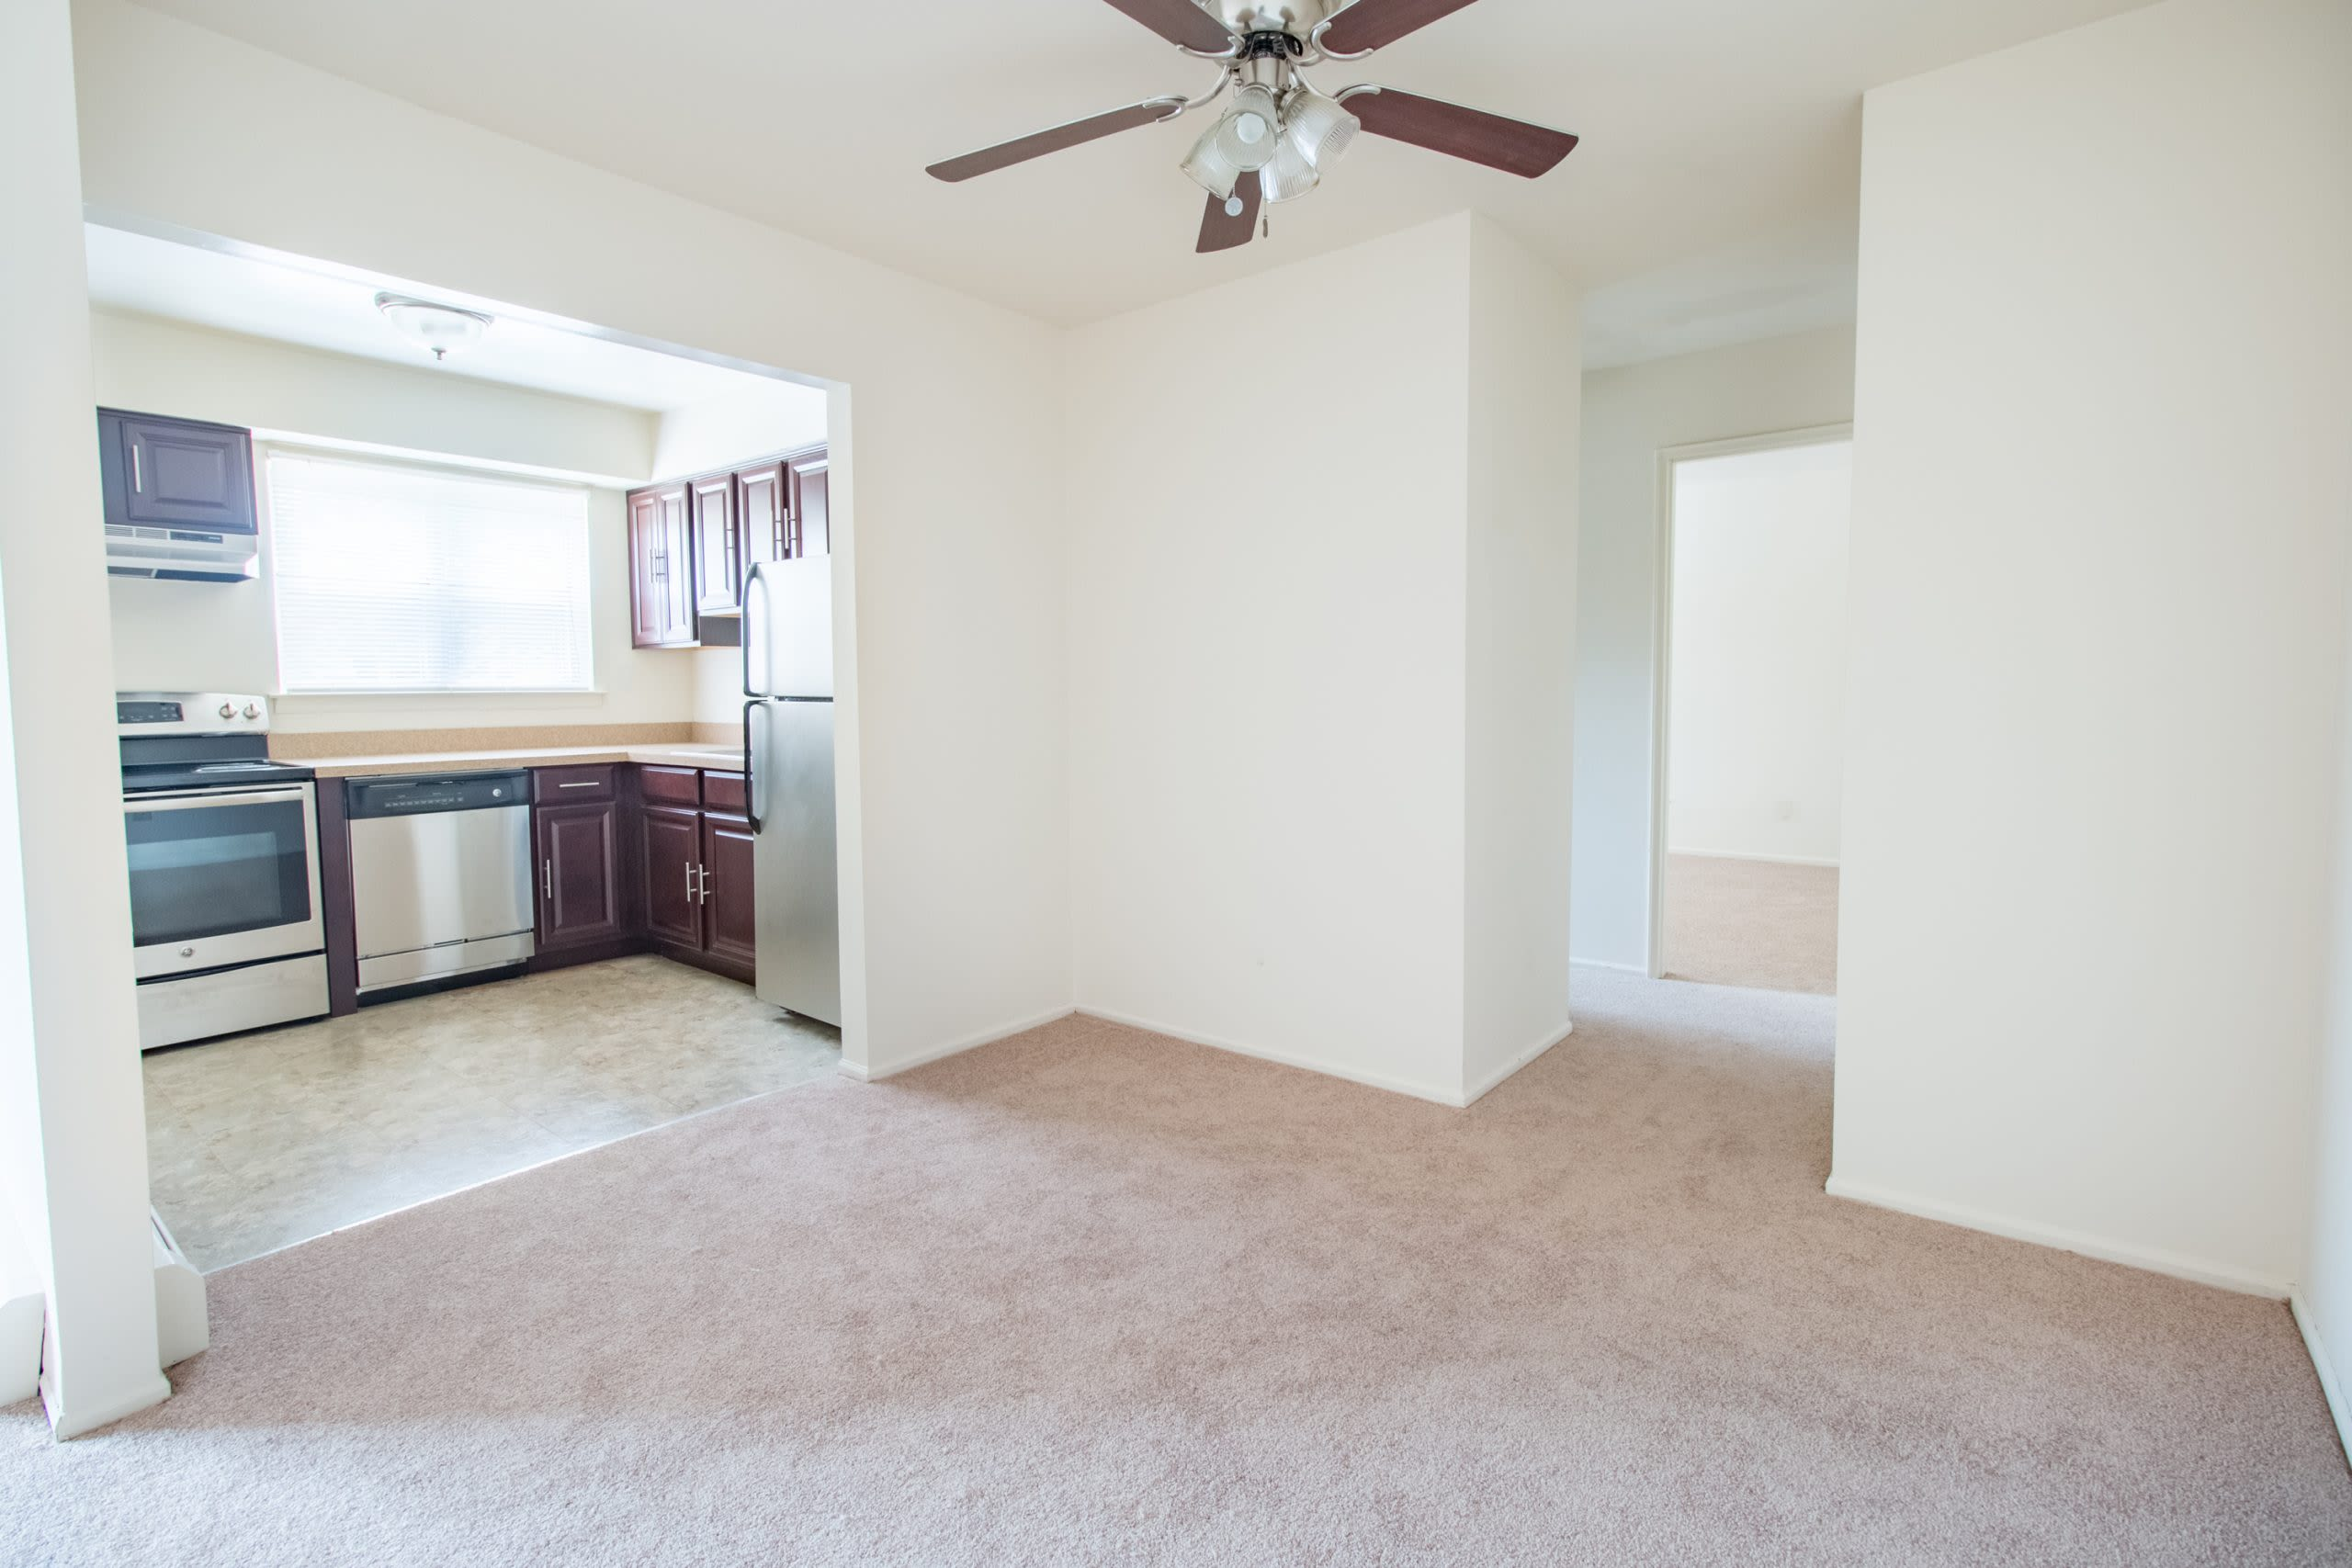 Spacious floor plans with ceiling fan at Brakeley Gardens in Phillipsburg, New Jersey